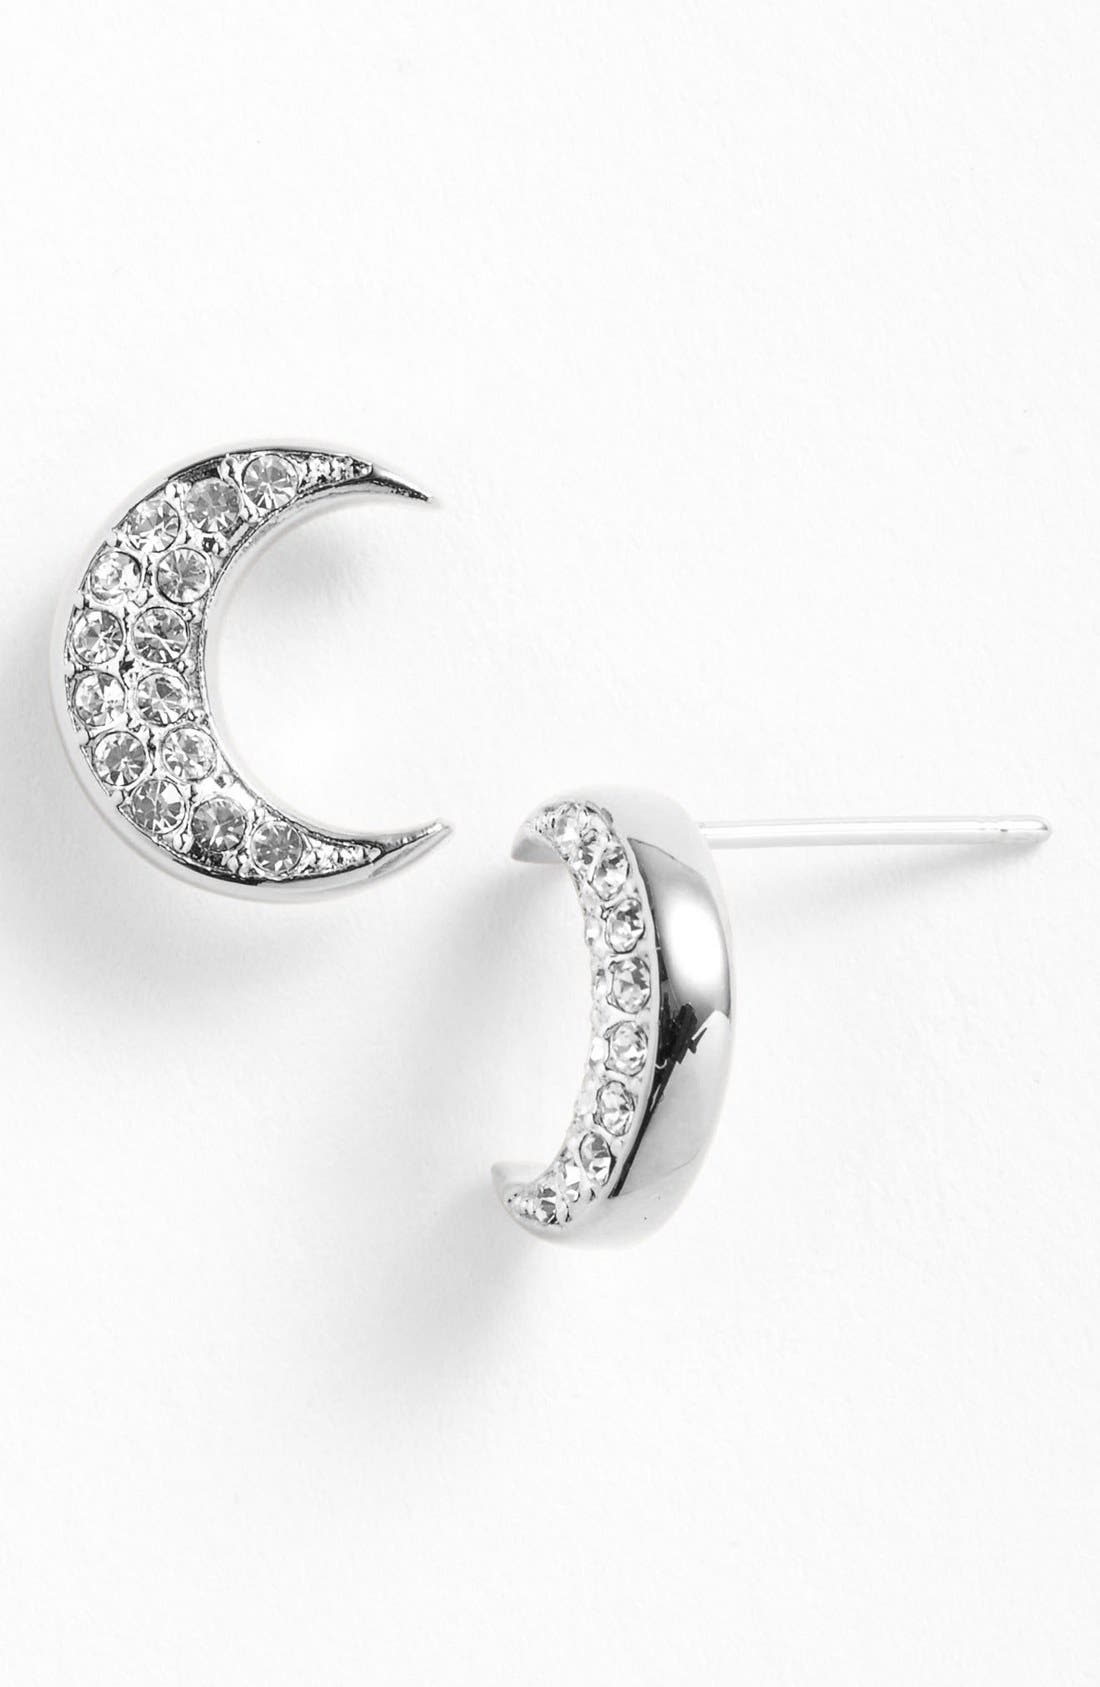 Main Image - Nadri 'Charmers' Pavé Symbol Stud Earrings (Nordstrom Exclusive)